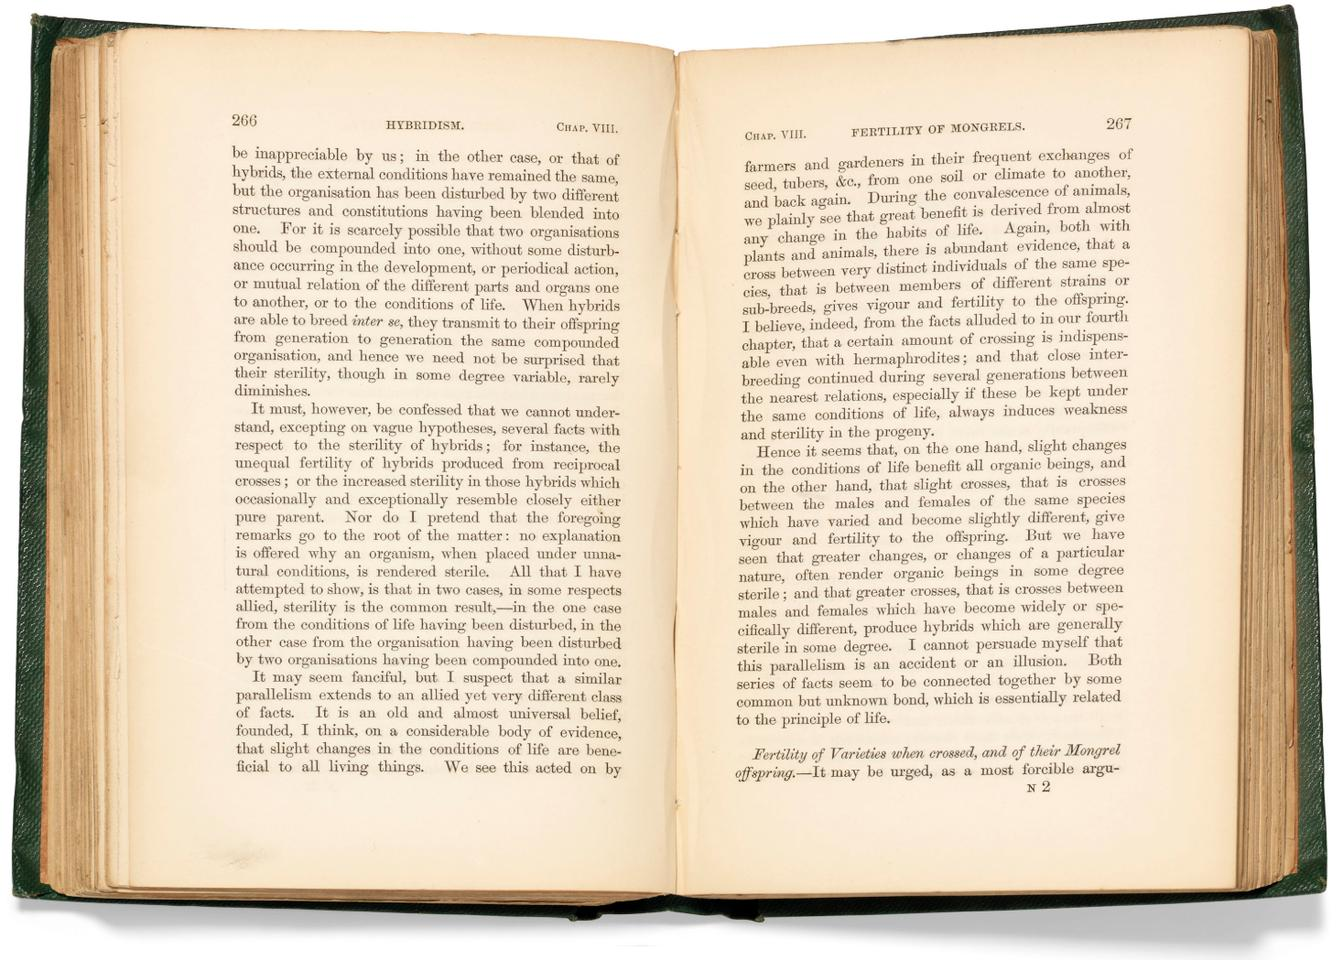 On the Origin of Species by Means of Natural Selection by Charles Darwin (1859)  Auction Description  Estimate: 177,240 to $253,200   Auction Date: July 9, 2019